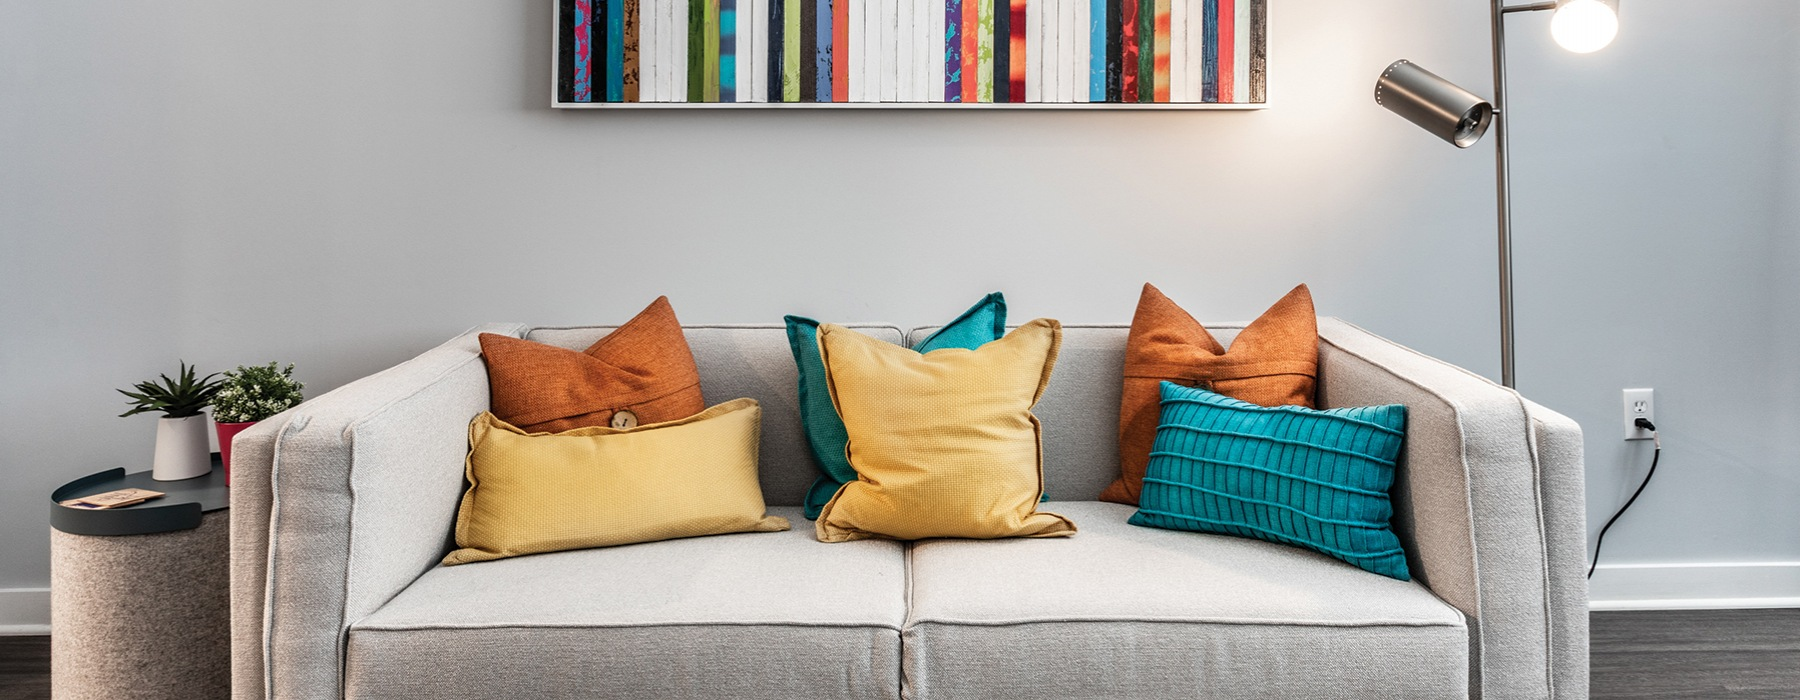 living room with couch and bright colored pillows